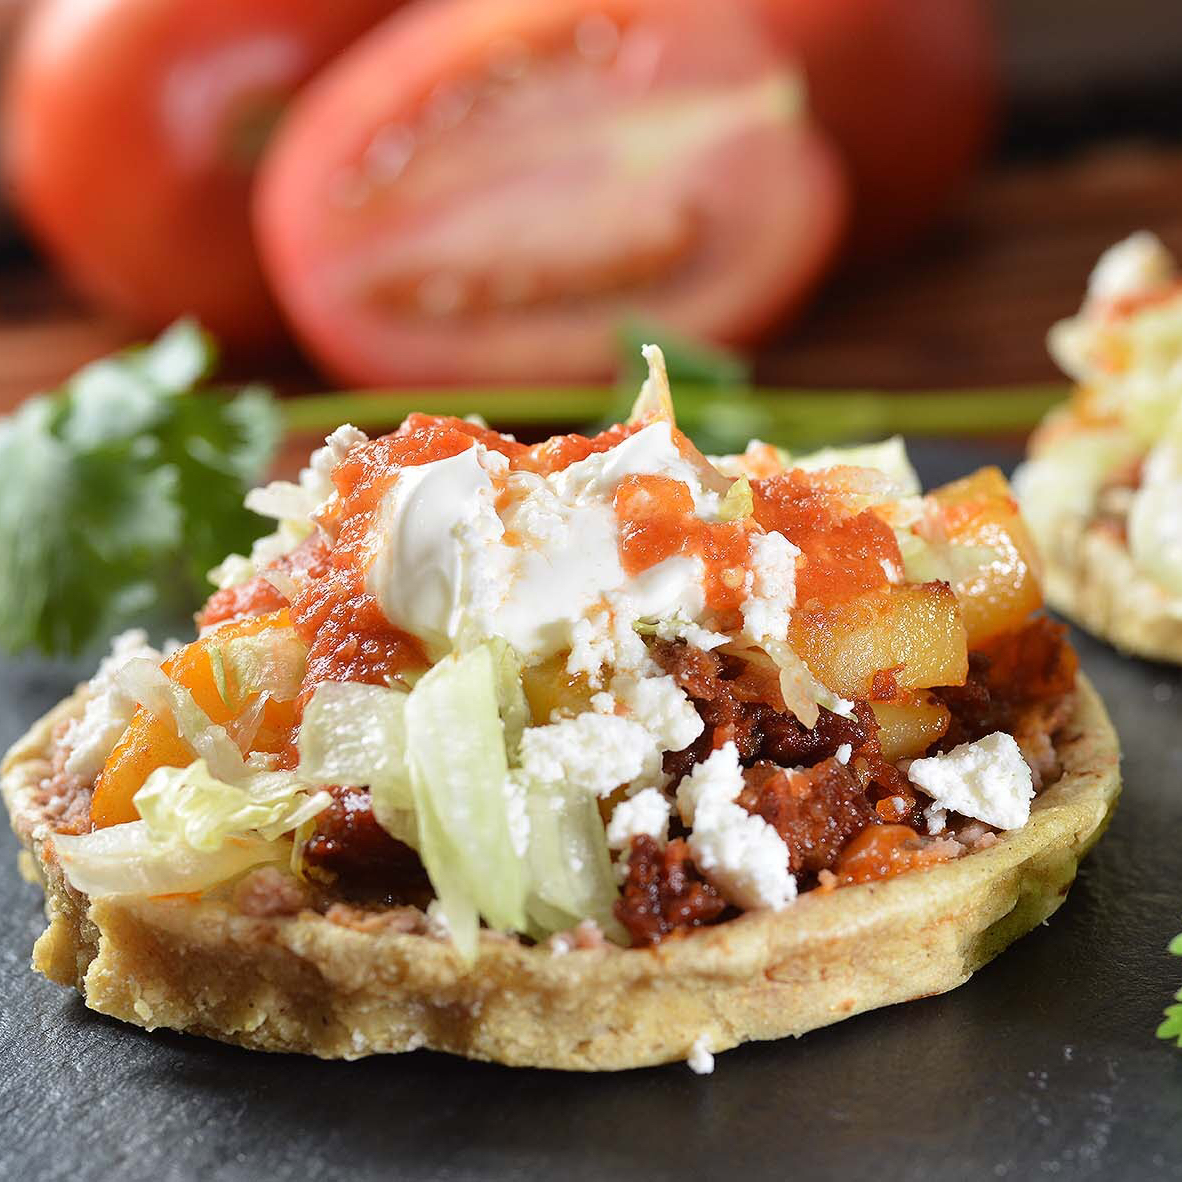 This traditional Mexican dish has unique regional variations. Every sope is anchored by a thick fried-masa base. Regional Mexican versions have their own signature toppings, but you can create your own one-of-a-kind sope with your favorite combination of Mexican-style meats, vegetables, refried beans, cheeses, lettuce, salsa, and sour cream.